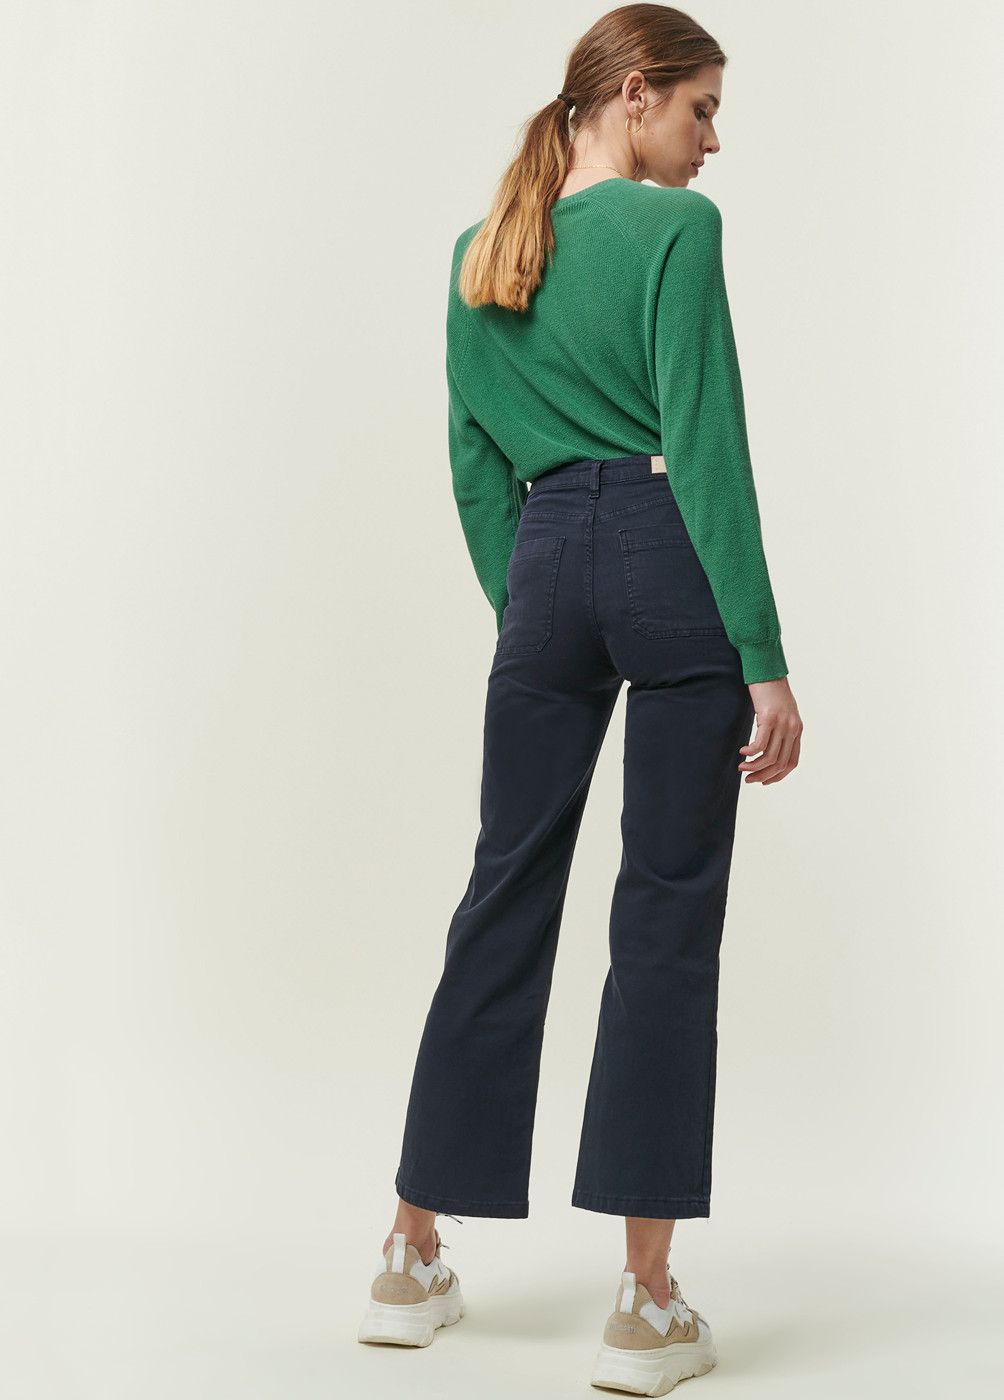 PANTALON FRIENDLY RECTO BOLSILLOS DELANT